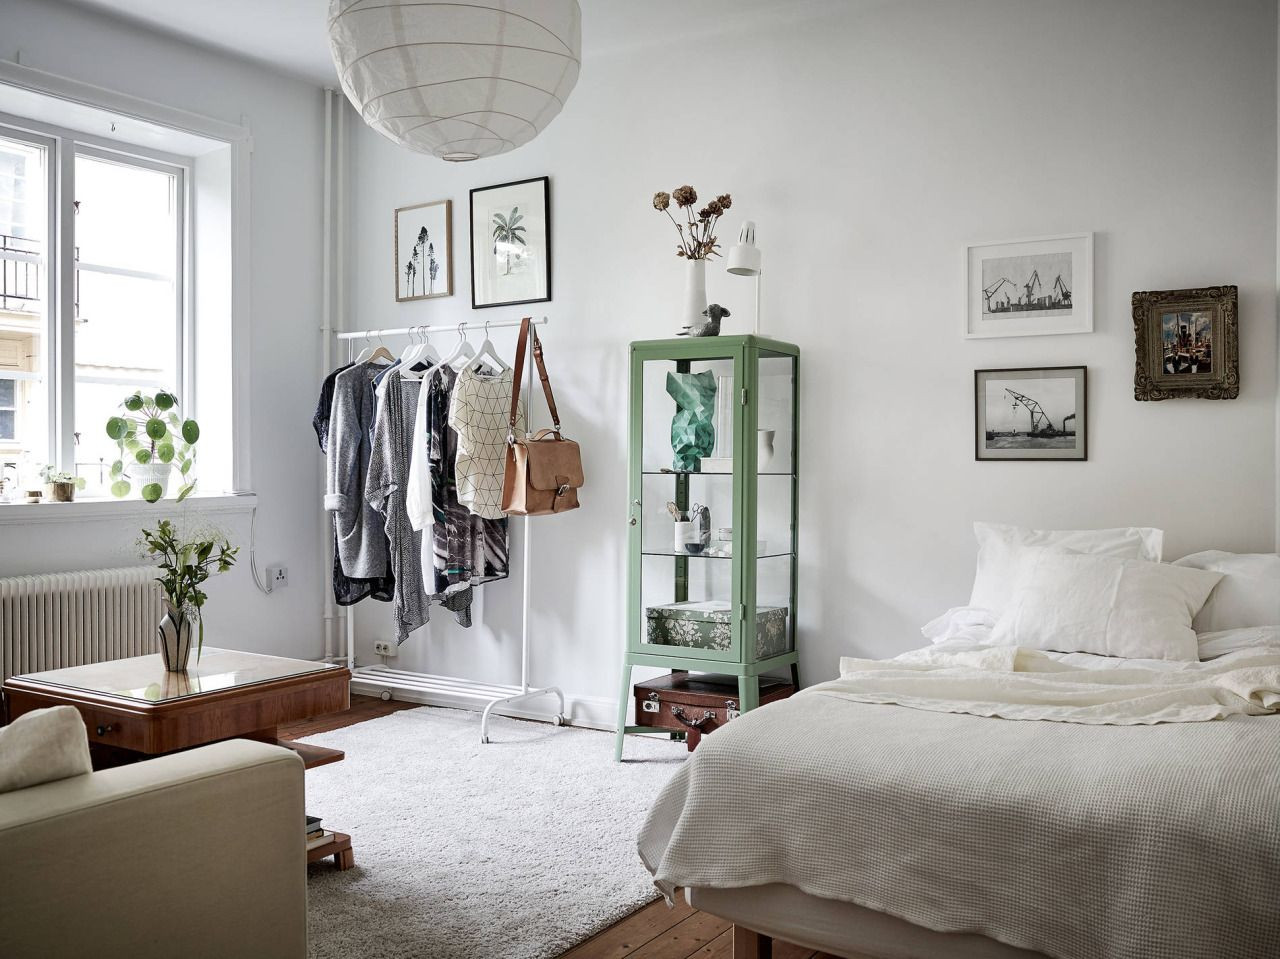 Excellent Bedrooms with Vintage touch Studio Apartment with Vintage touch